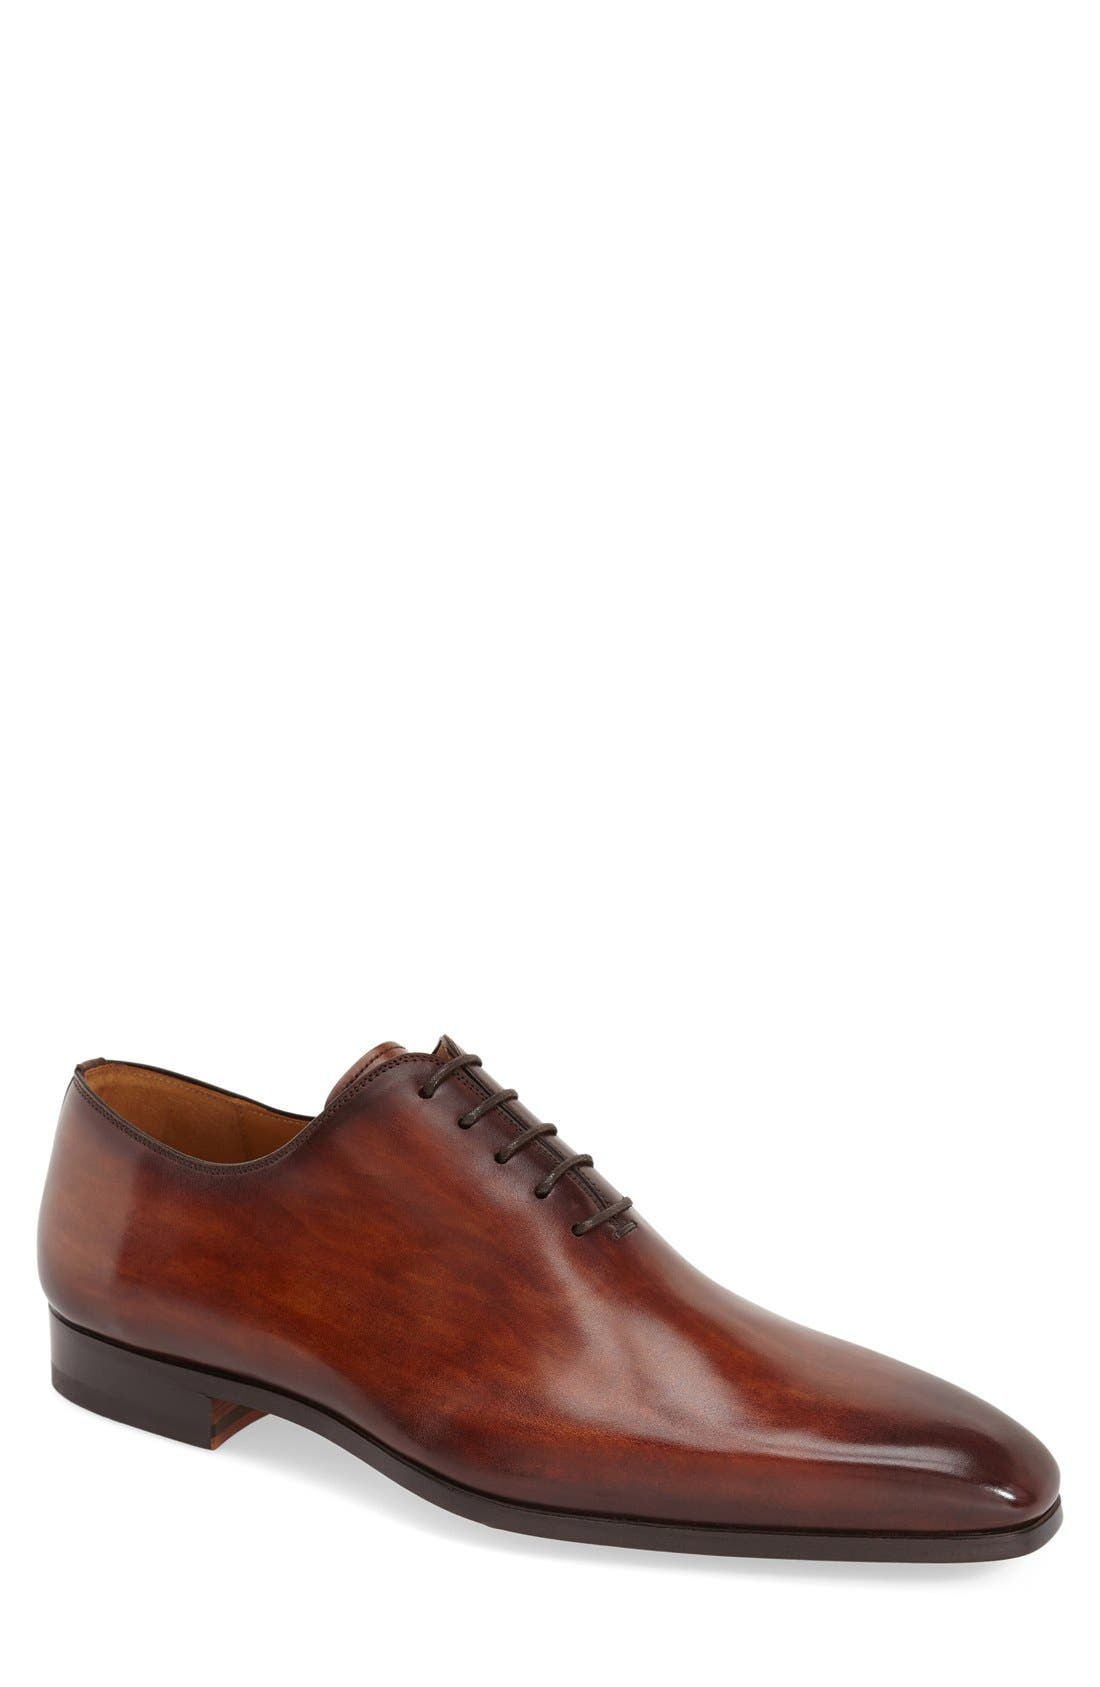 'Cruz' Plain Toe Oxford,                         Main,                         color, Cognac Leather